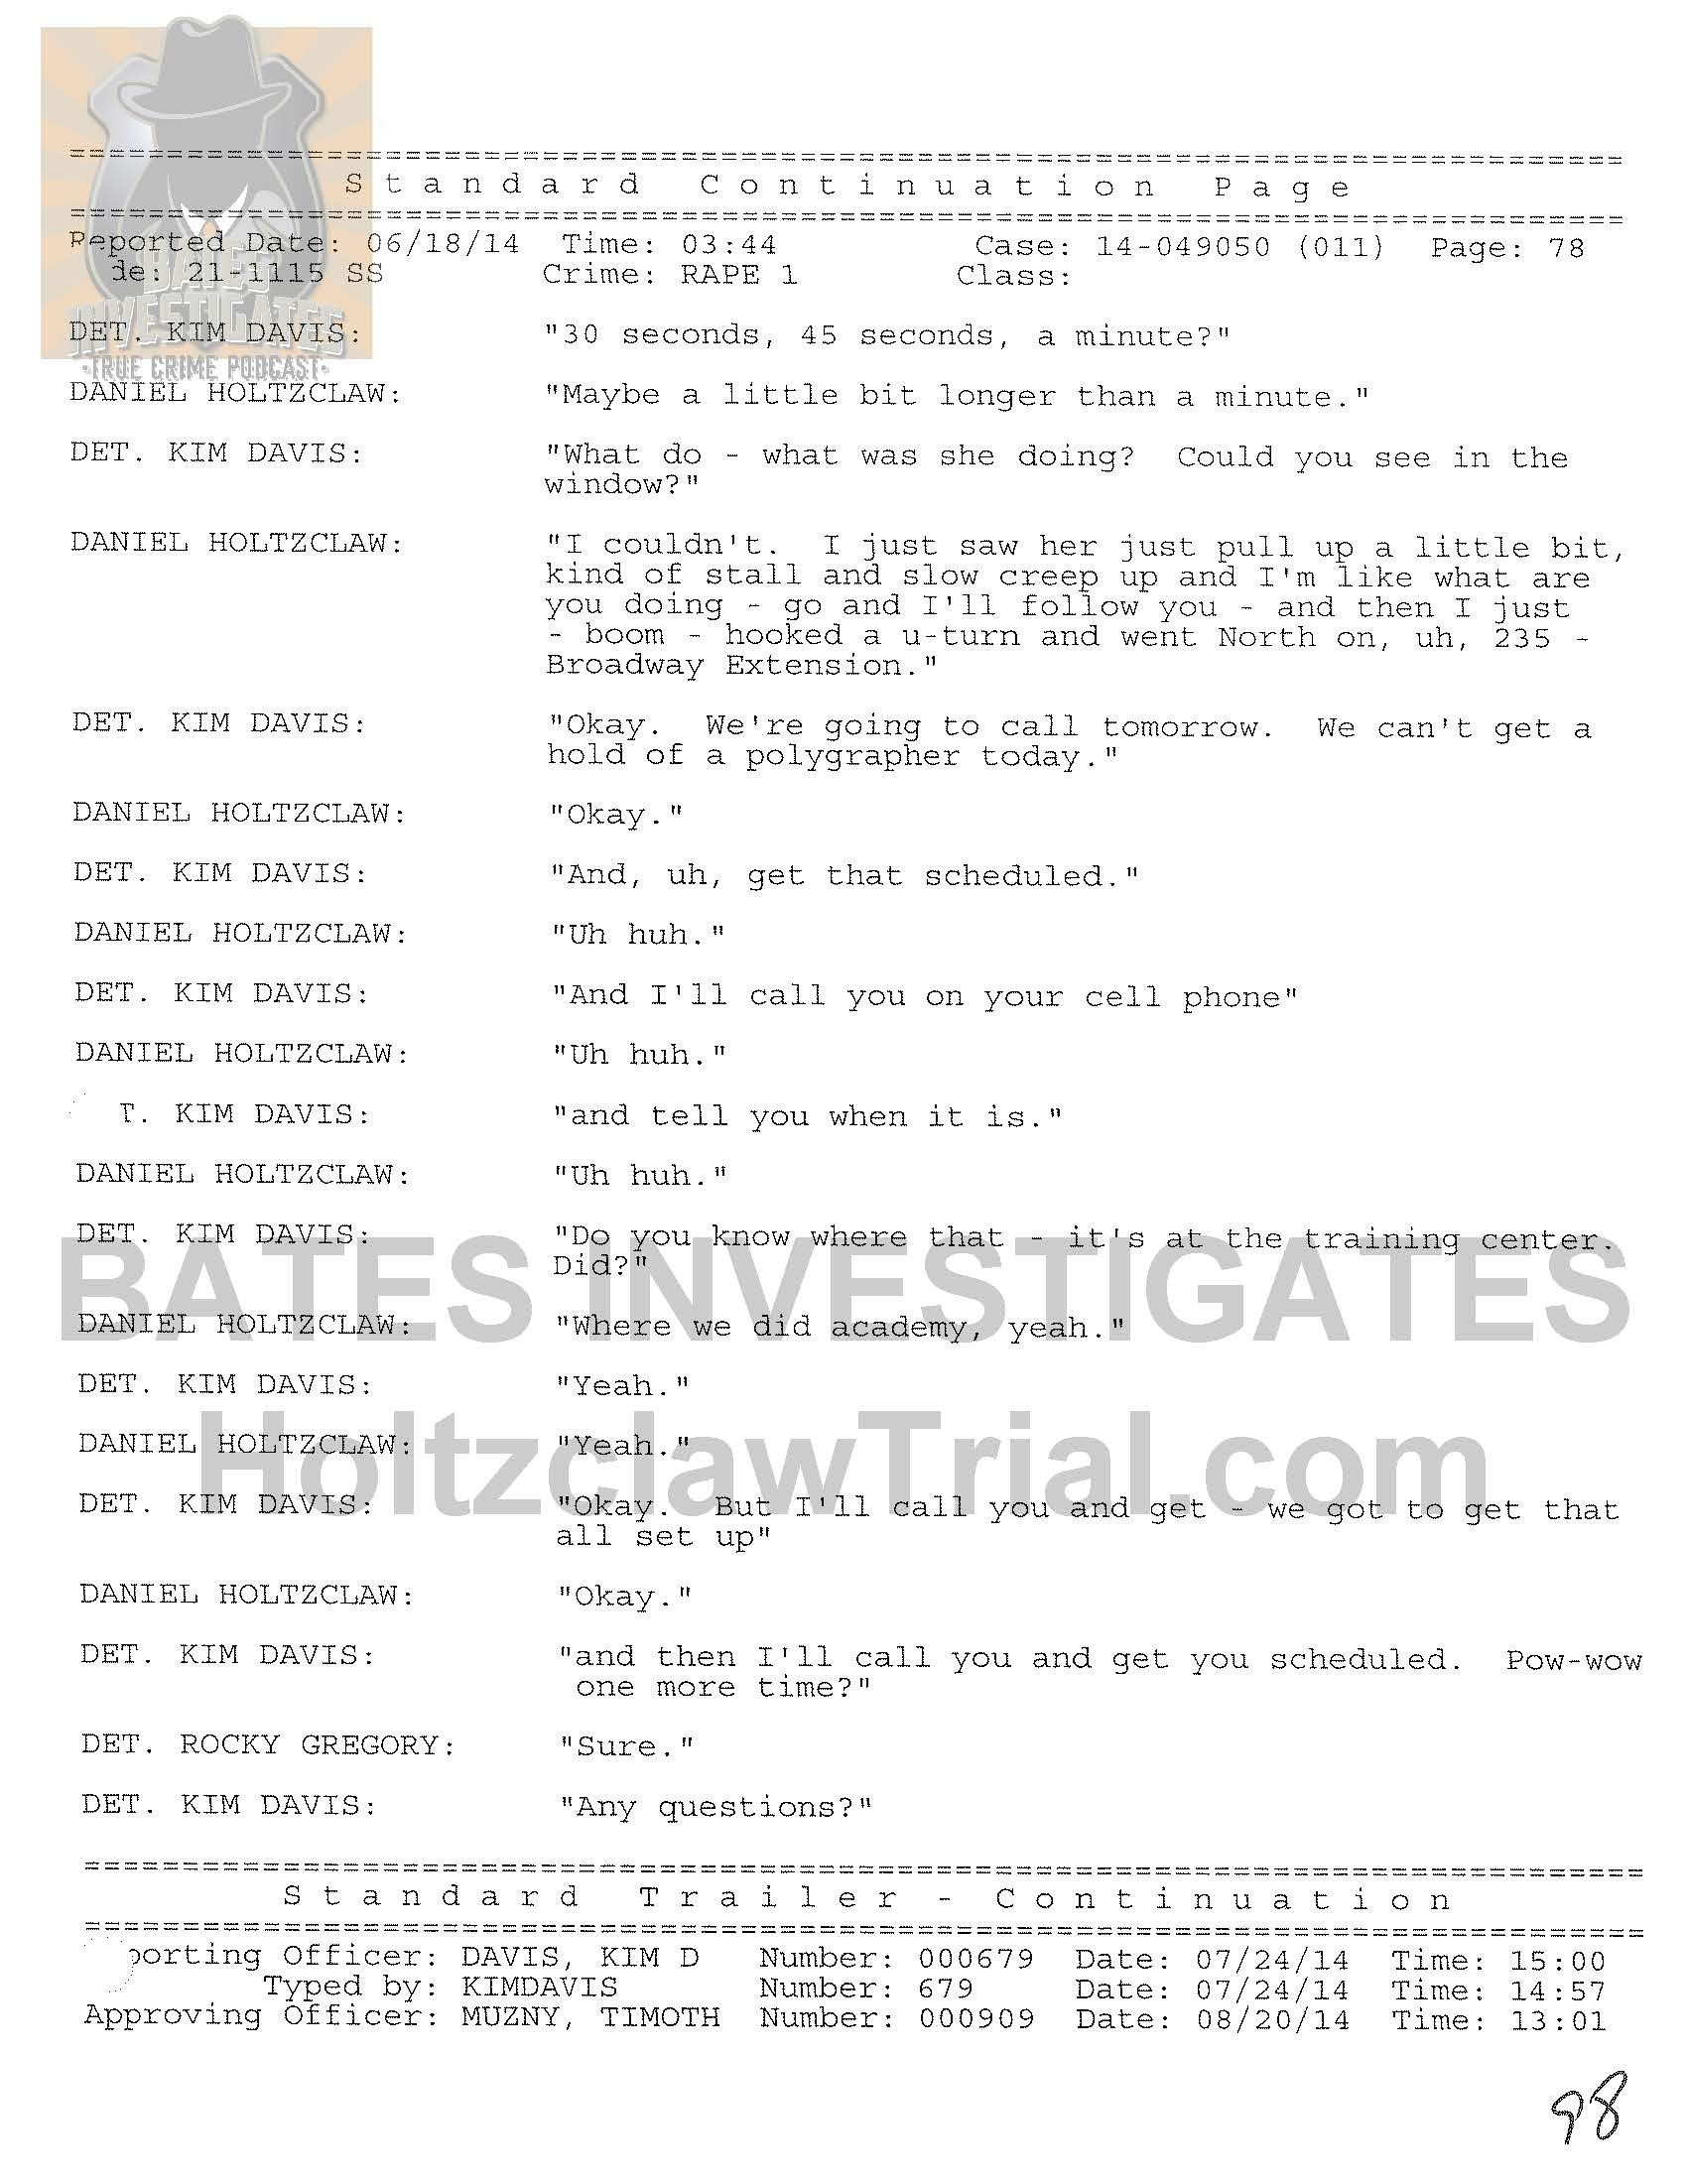 Holtzclaw Interrogation Transcript - Ep02 Redacted_Page_78.jpg